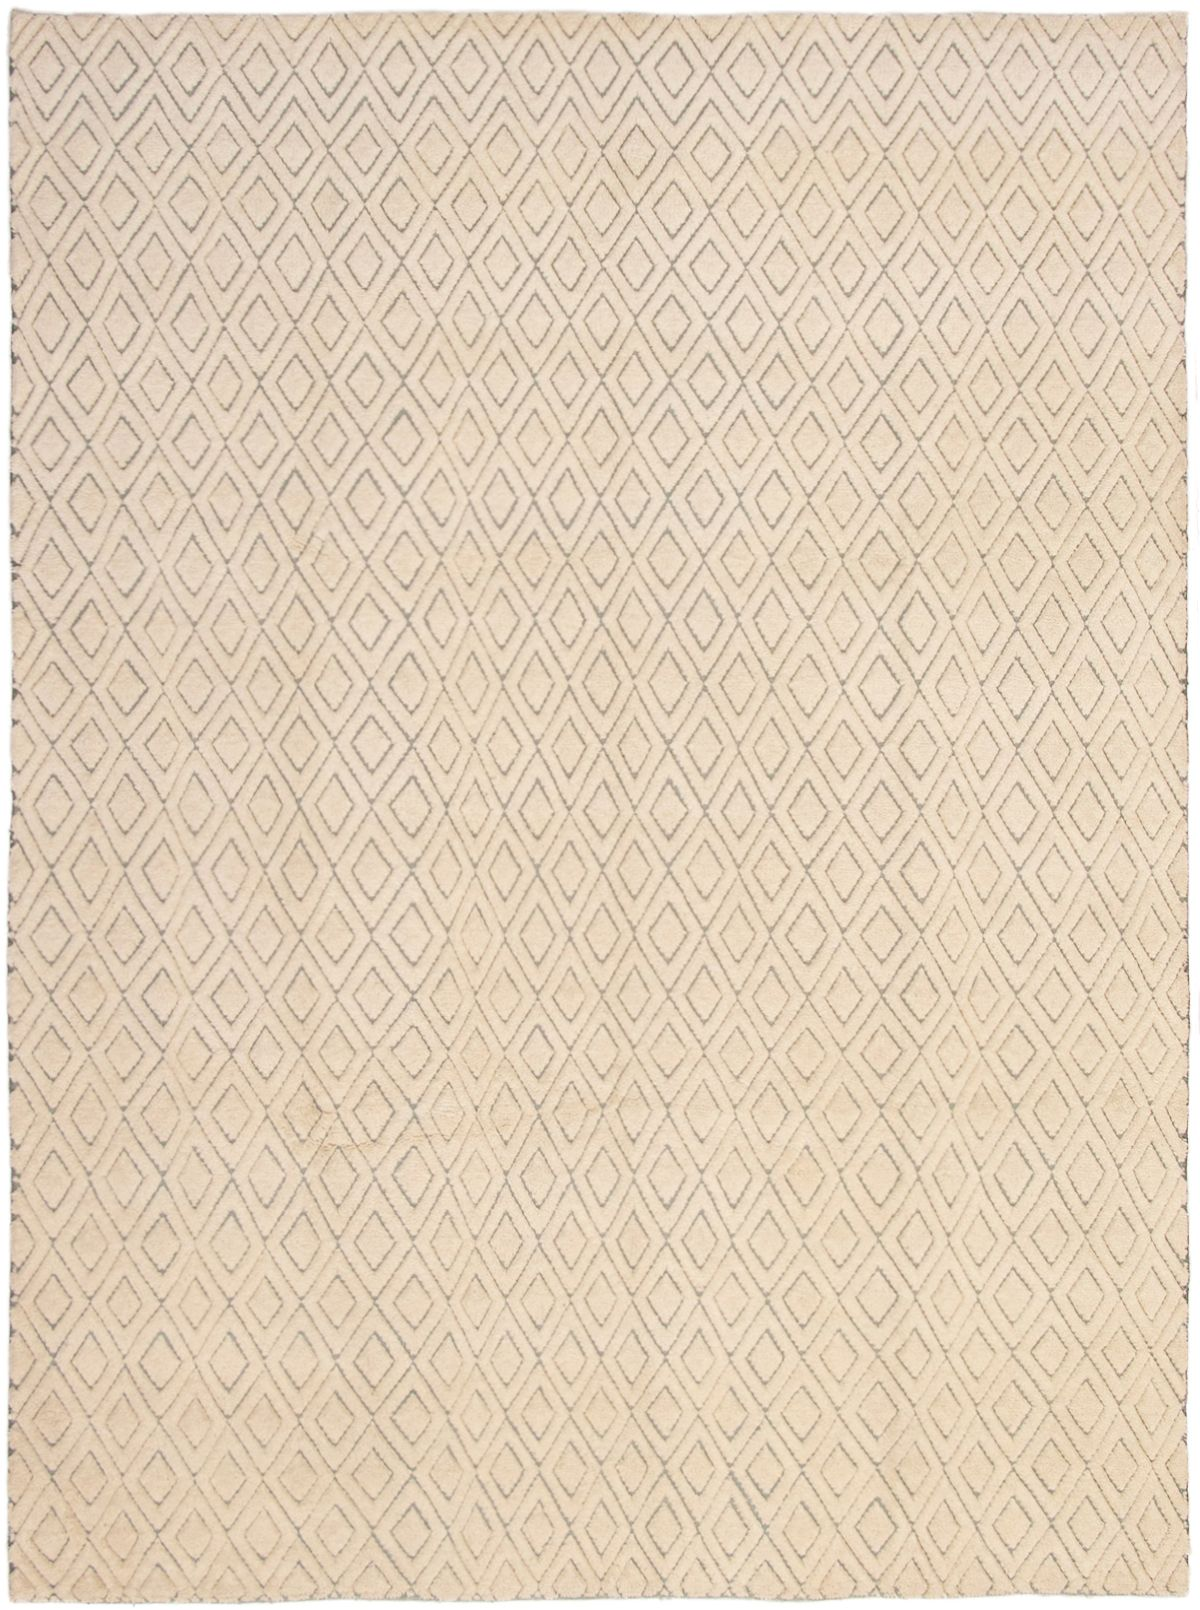 """Hand-knotted Arlequin Cream Wool Rug 8'10"""" x 11'10"""" Size: 8'10"""" x 11'10"""""""